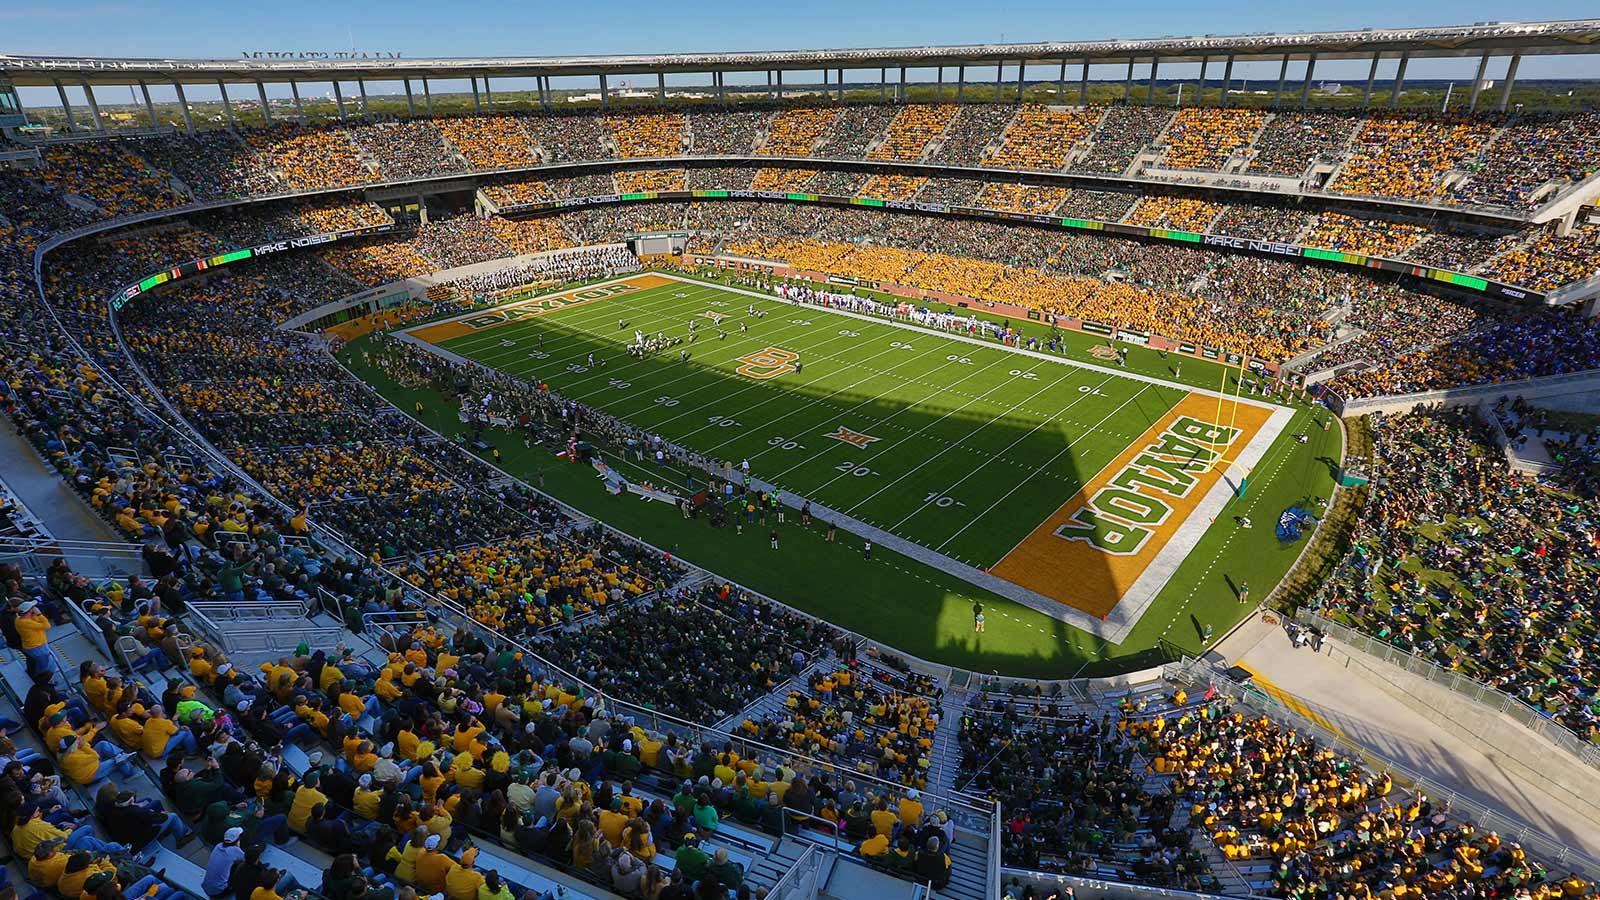 Each season, thousands of green- and gold-clad Bear fans fill McLane Stadium for Big 12 Conference action.